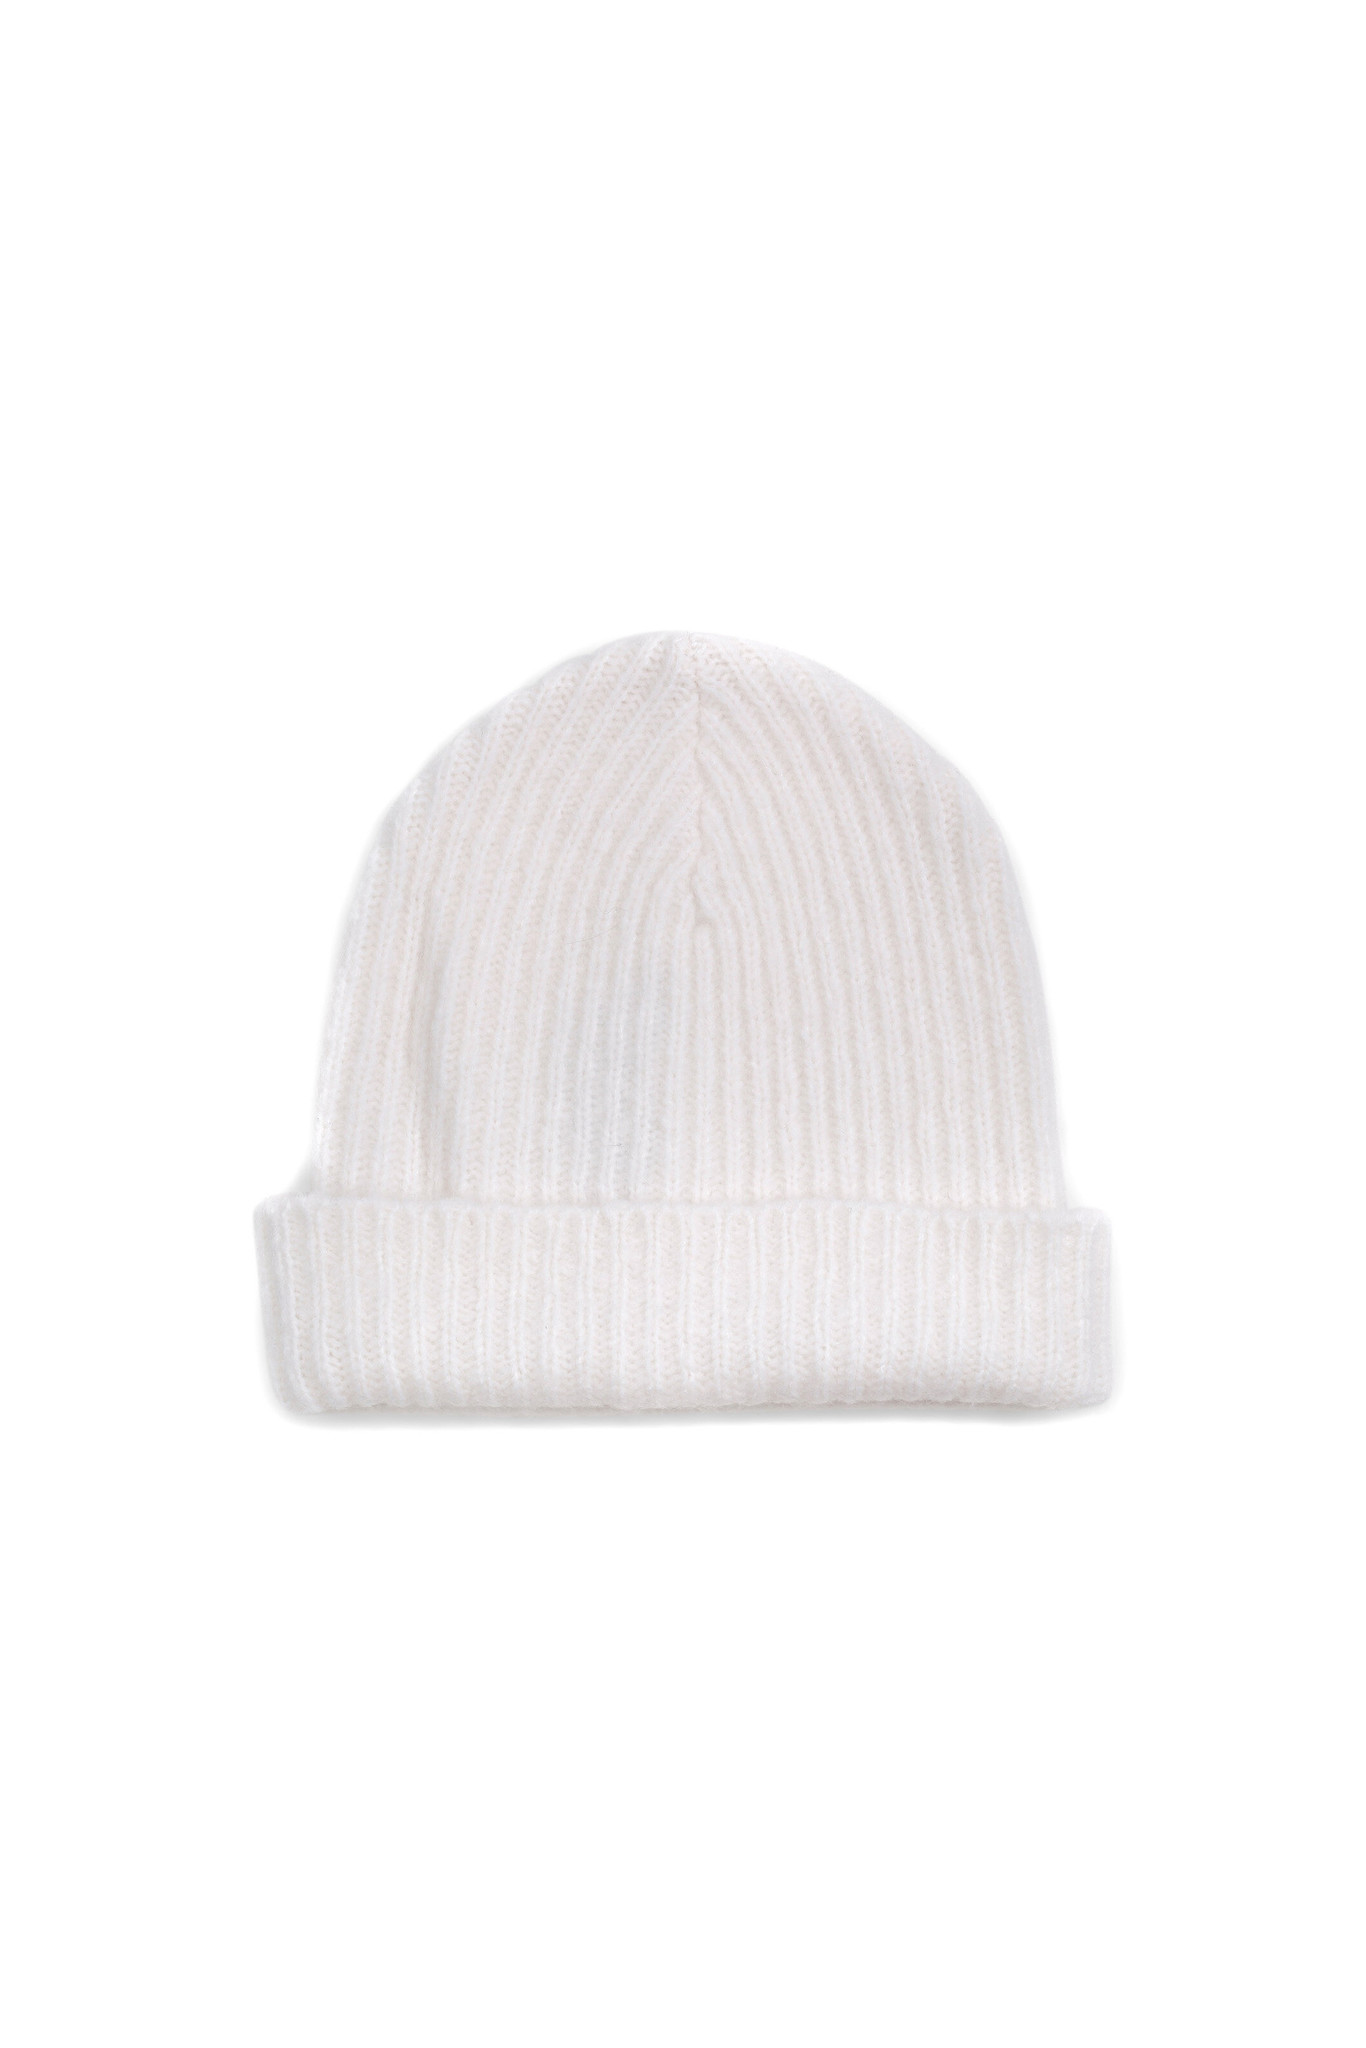 Nimbo Hat - Off White-1